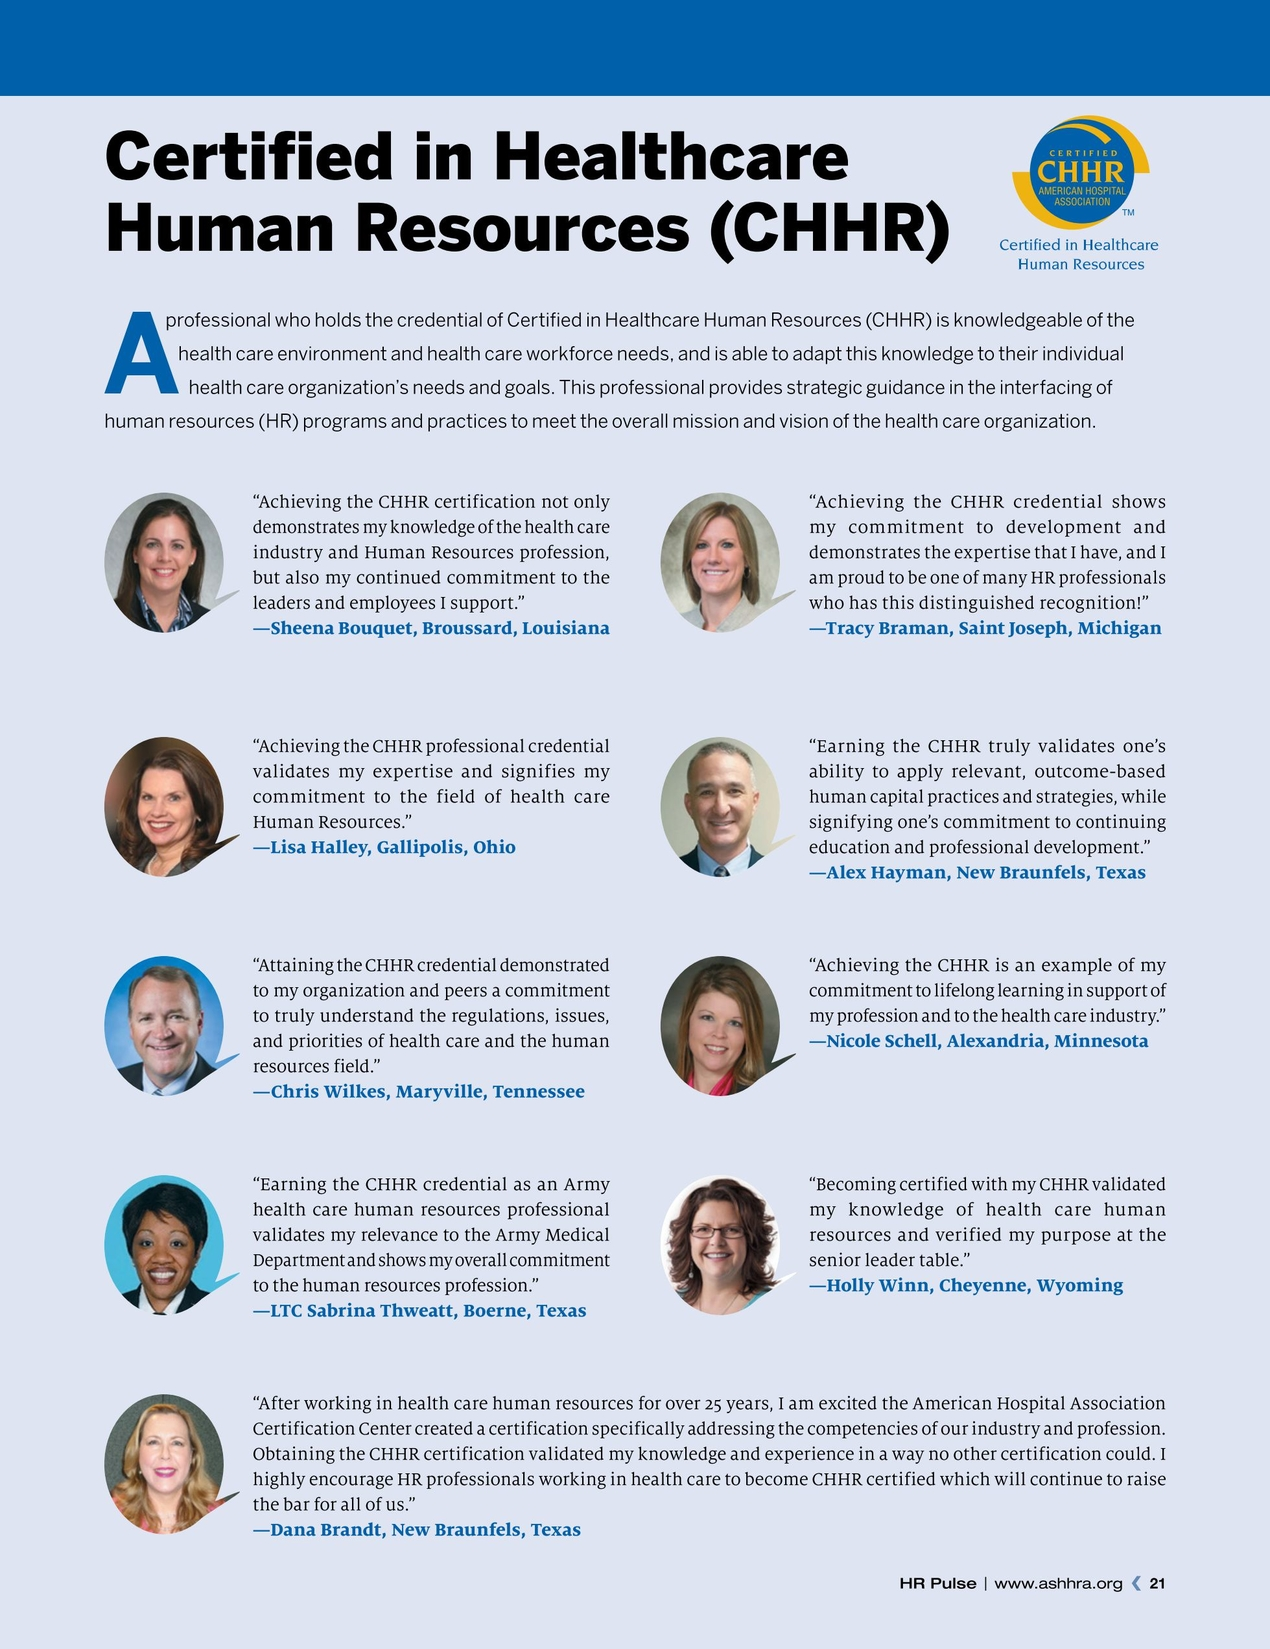 Hr pulse fall 2016 20 21 support and guidance an hr professional shares her experience earning the chhr designation an interview with debbie splinter chhr fache shrm scp 1betcityfo Image collections